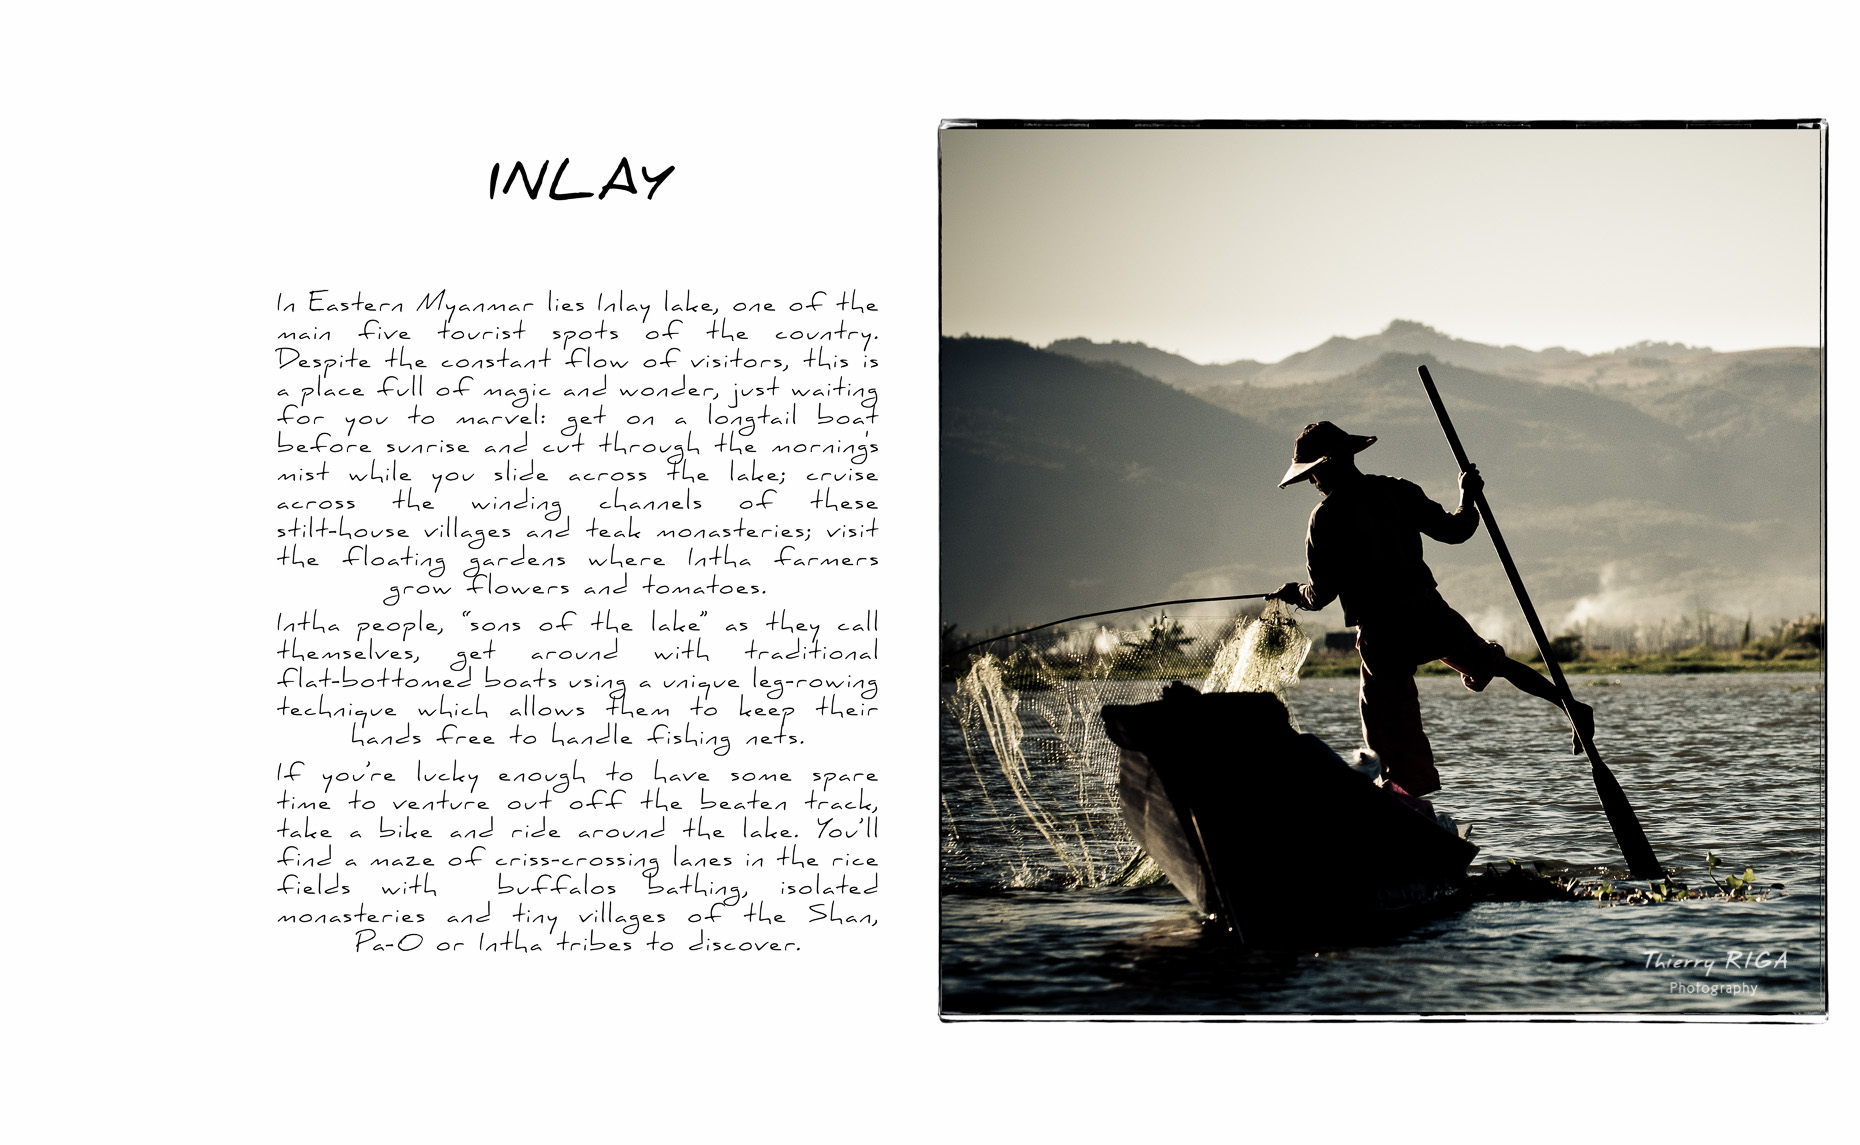 Inlay lake fisherman net intro